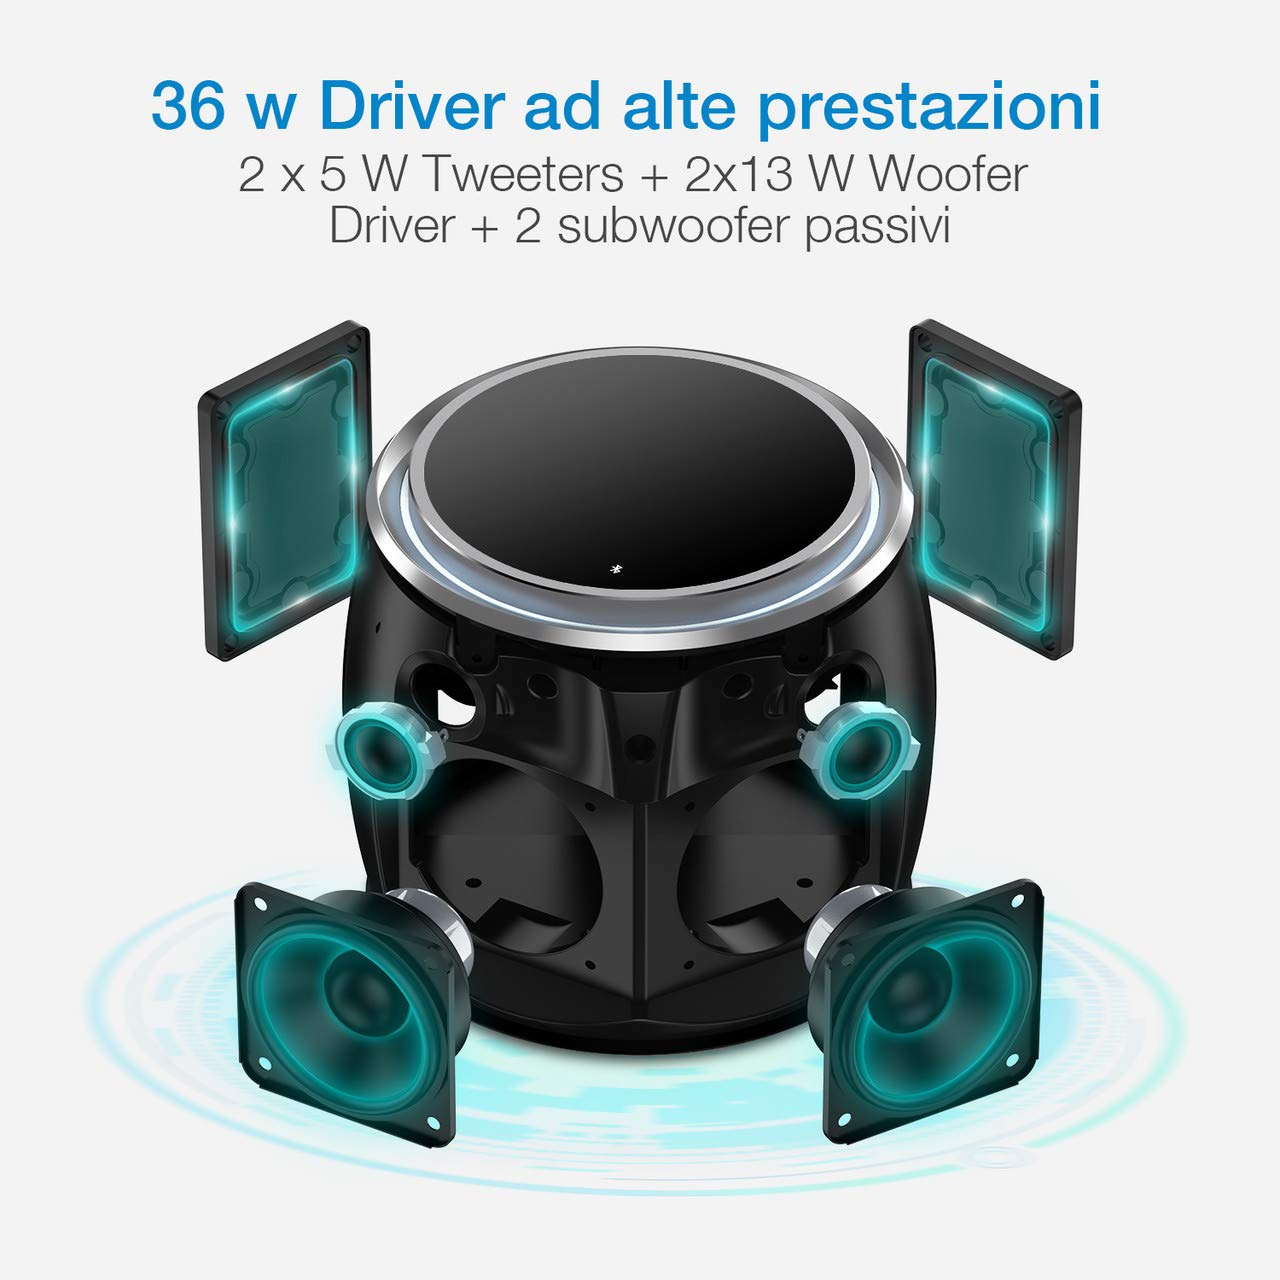 POWERADD Altoparlante Bluetooth, Cassa Bluetooth Dee-G Con Speaker Da 36 Watt e 2 Subwoofer Passivi, Bluetooth 4.2, Compatibile Con iOS, Android